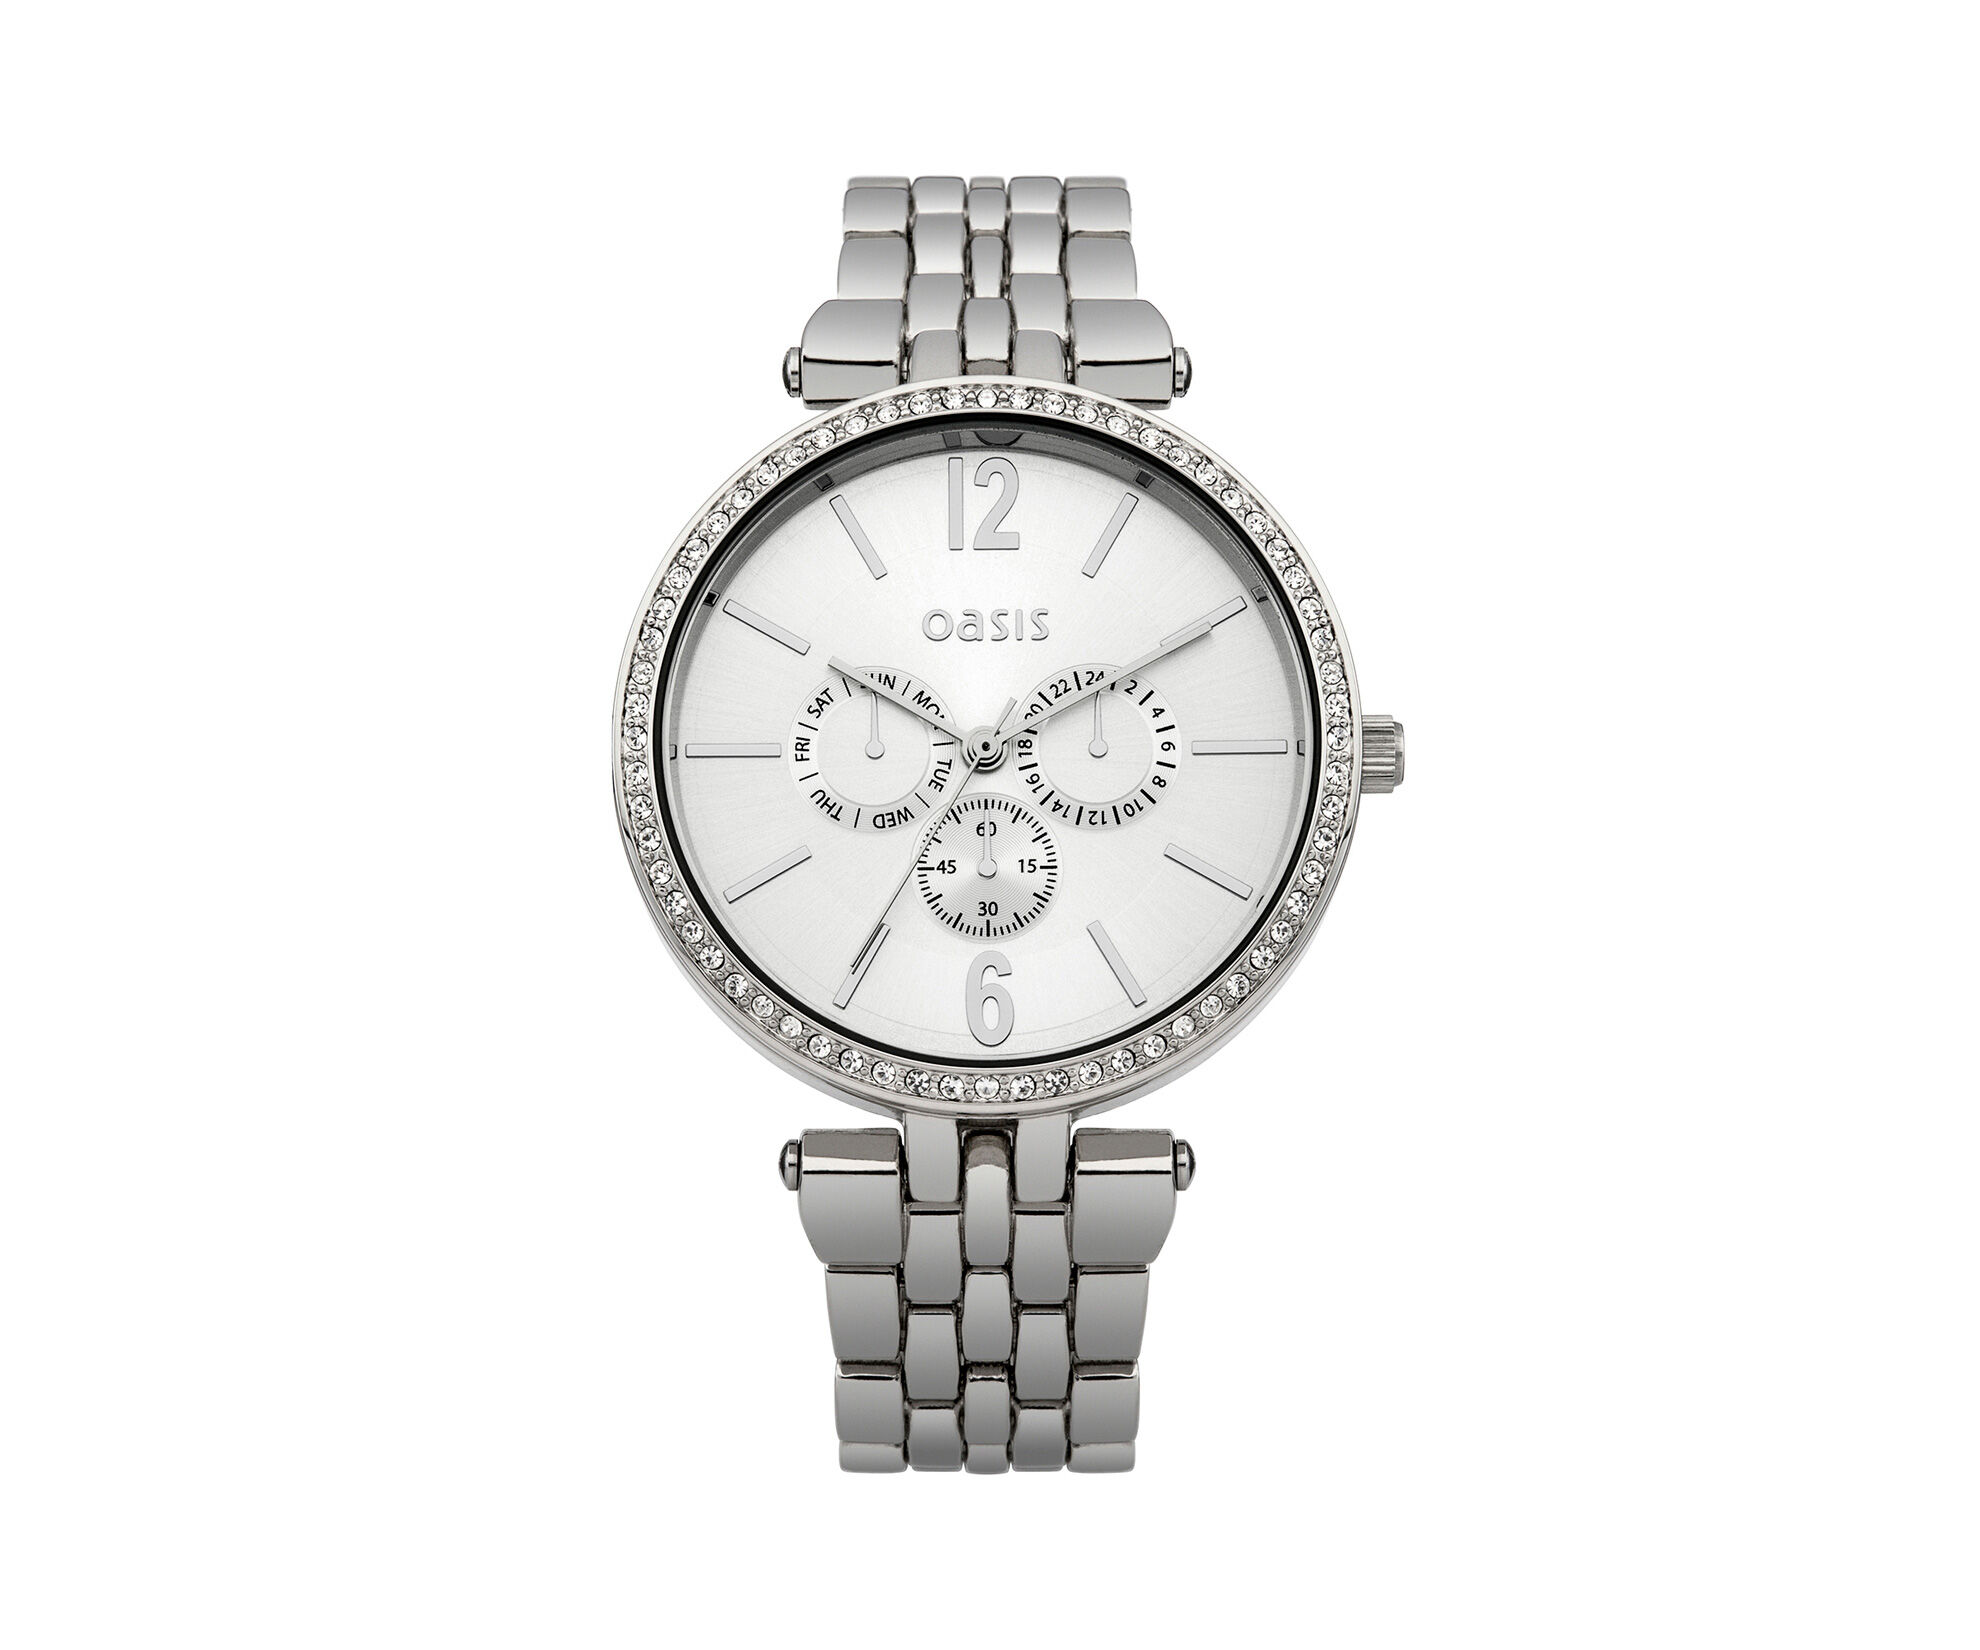 Oasis, Sliver Tone Dial Watch Silver 0